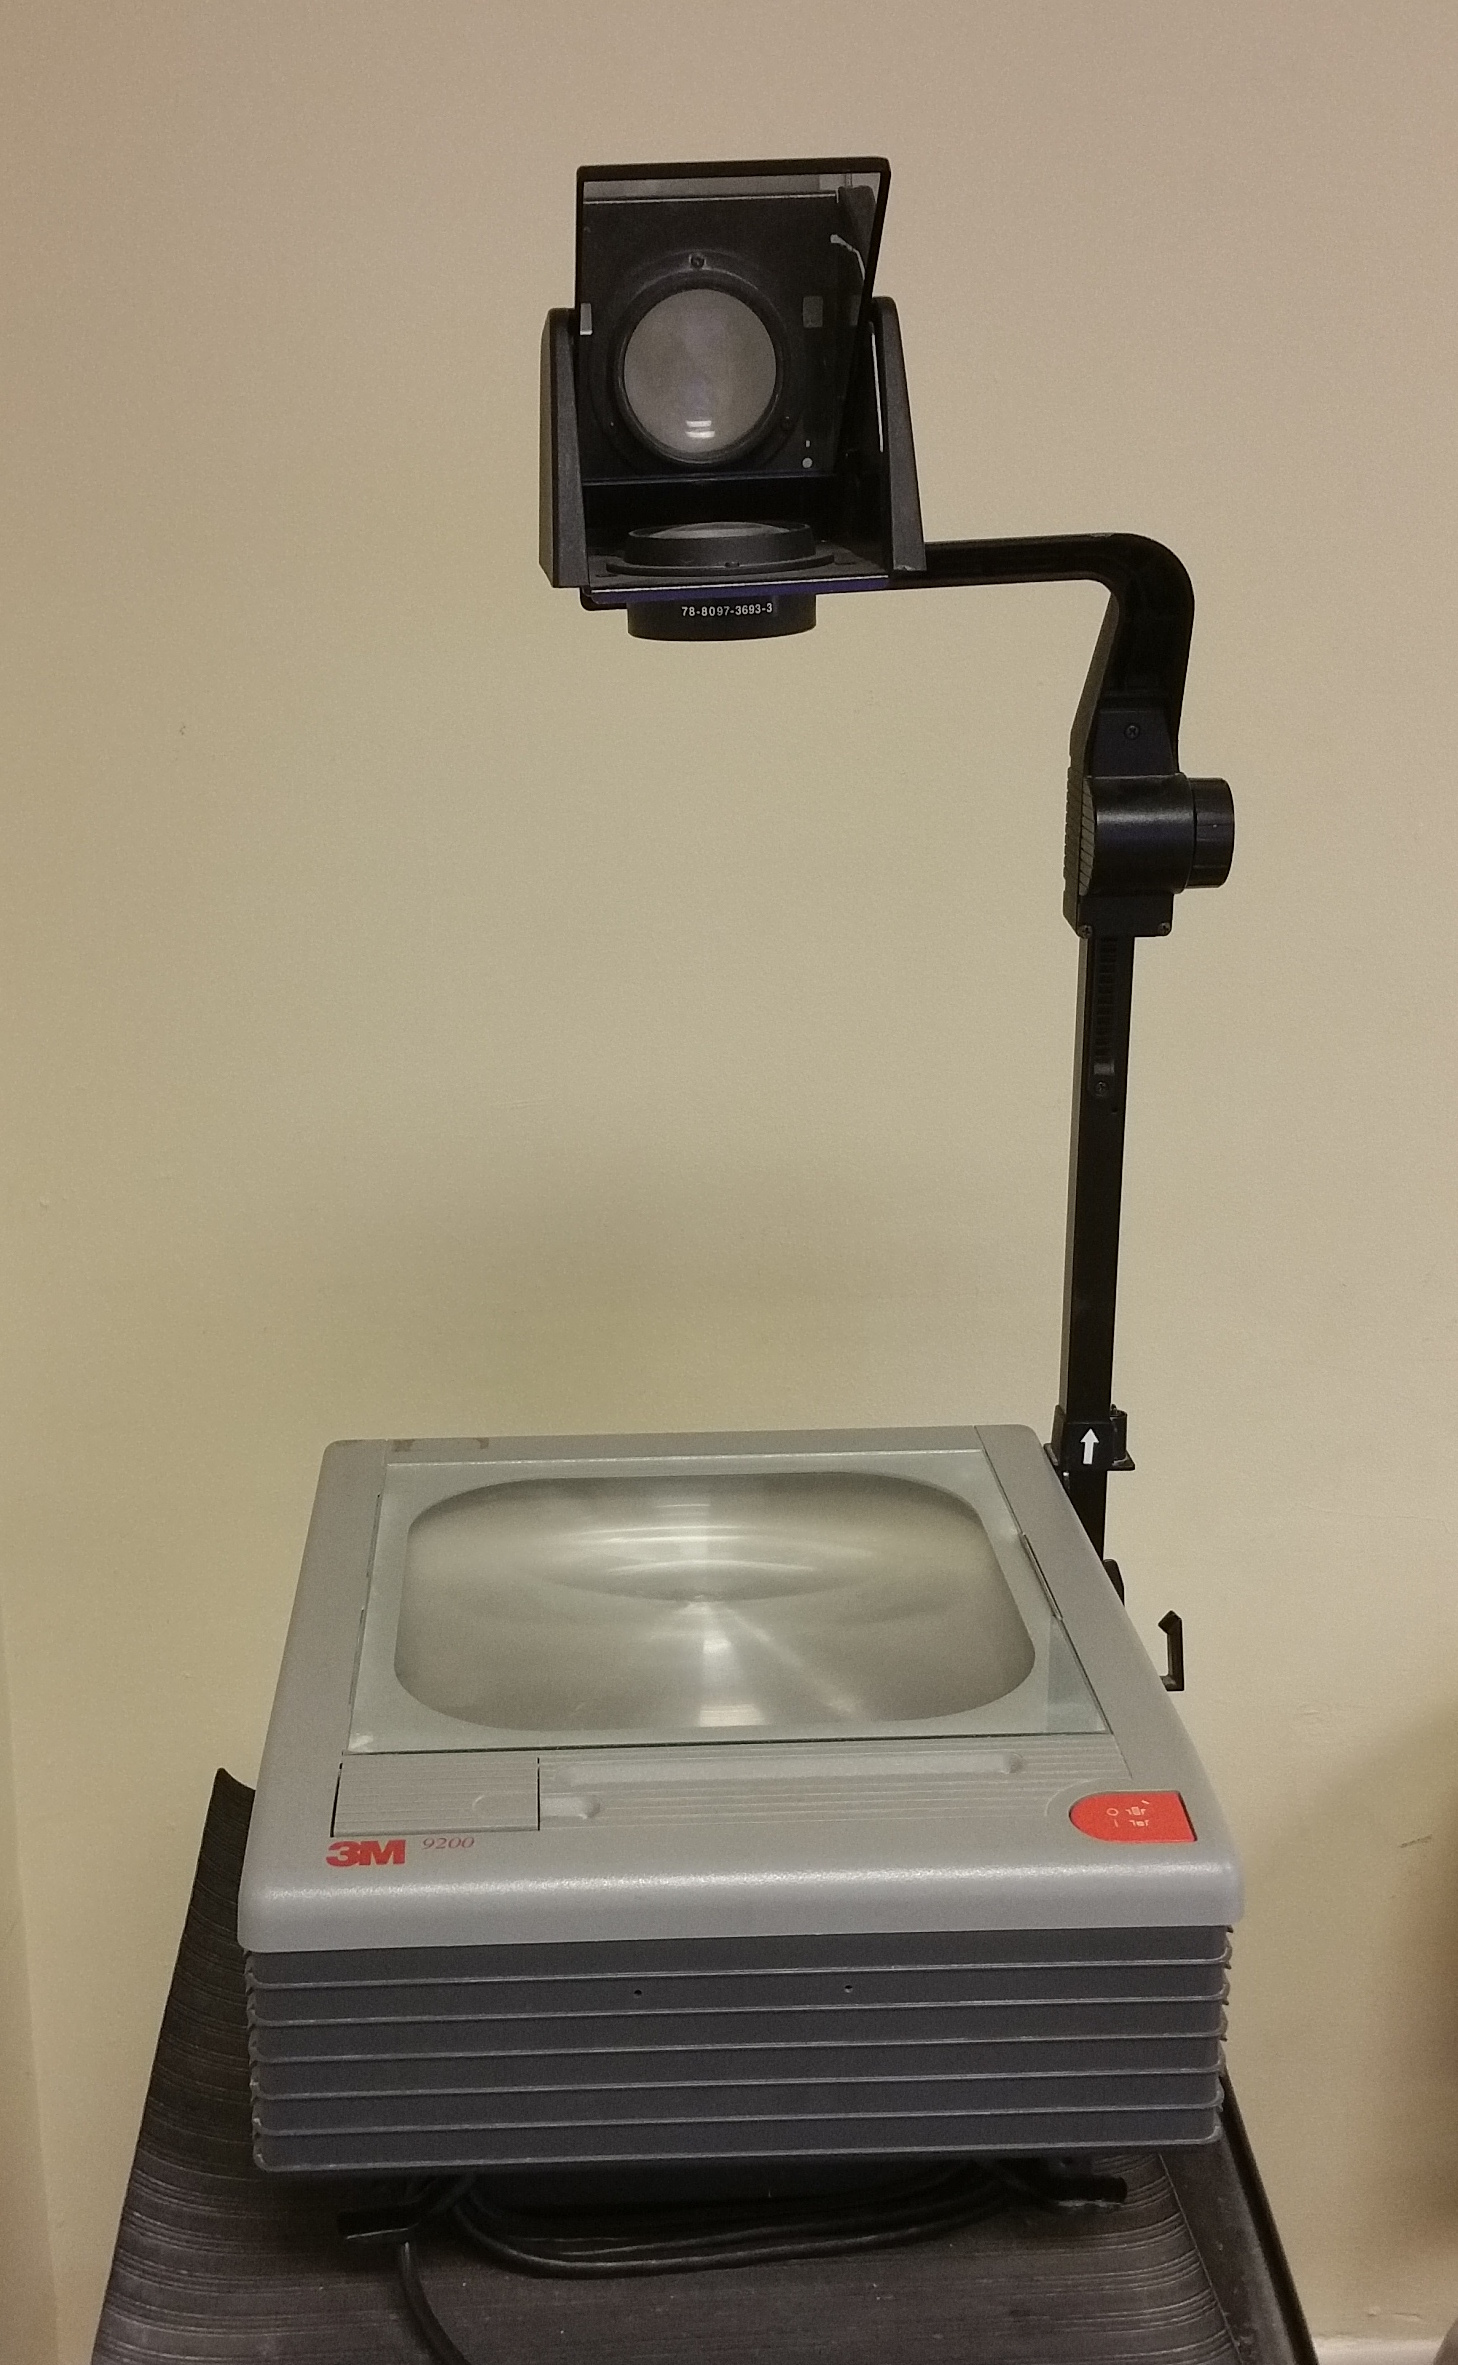 A picture of the 3M overhead projector.